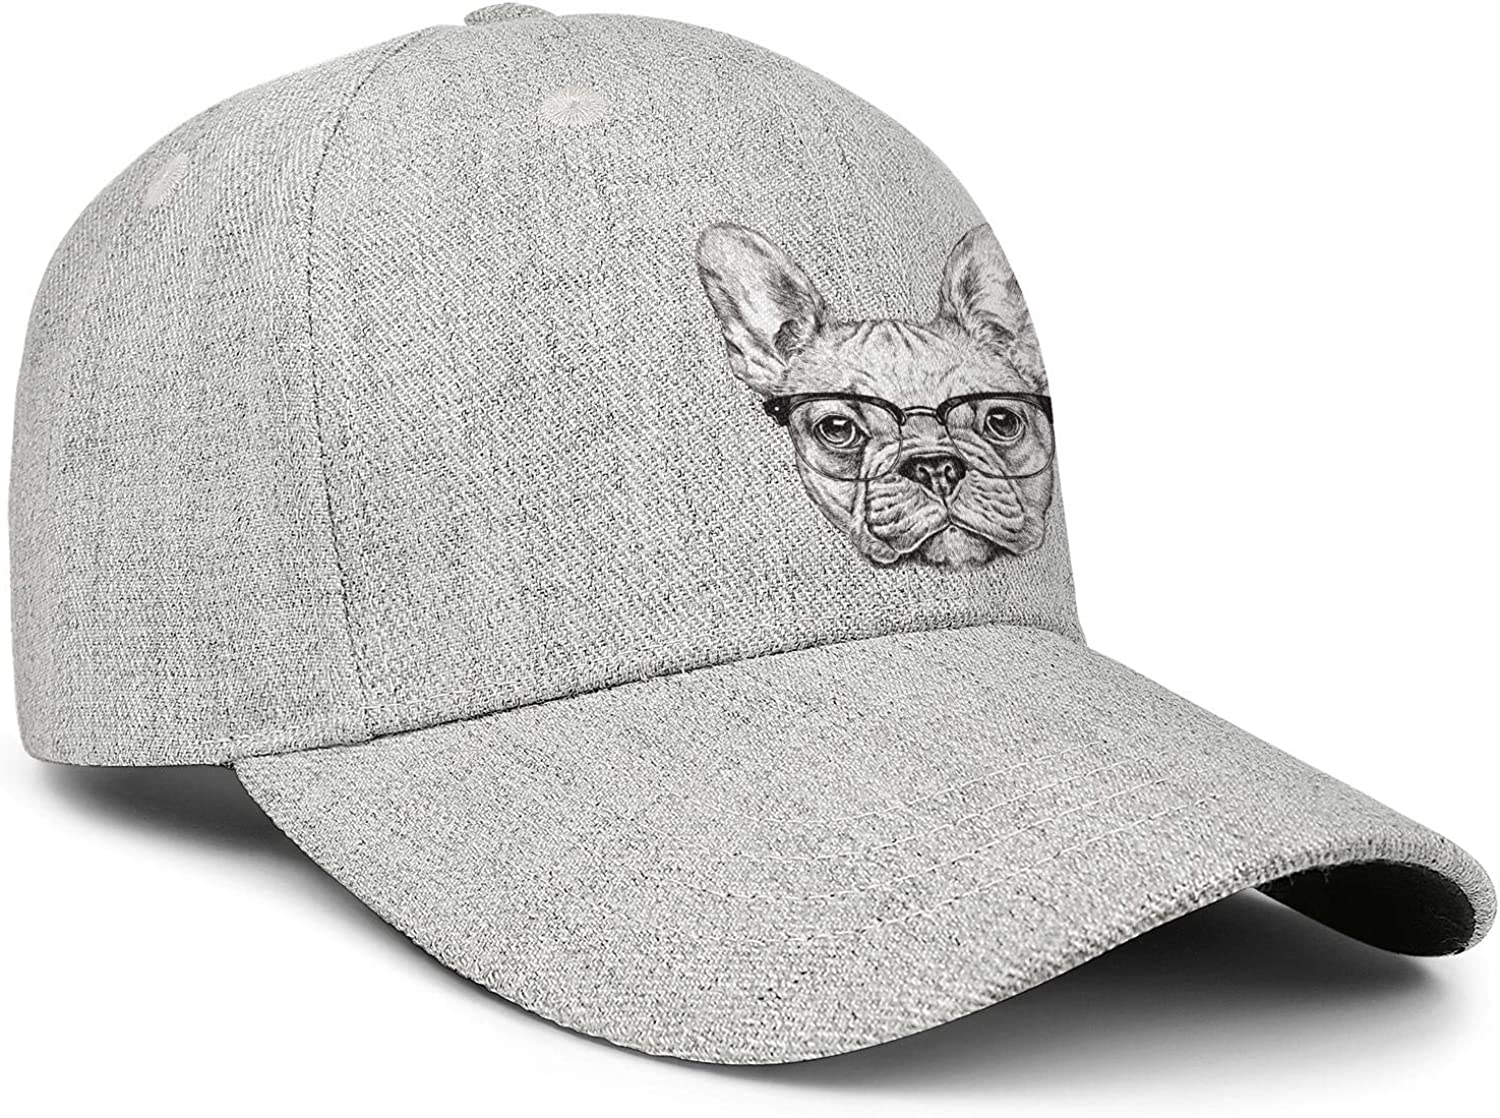 Hipster Geek French Bulldog with Glasses Unisex Baseball Cap Outdoor Fishing Hats Adjustable Trucker Caps Dad-Hat